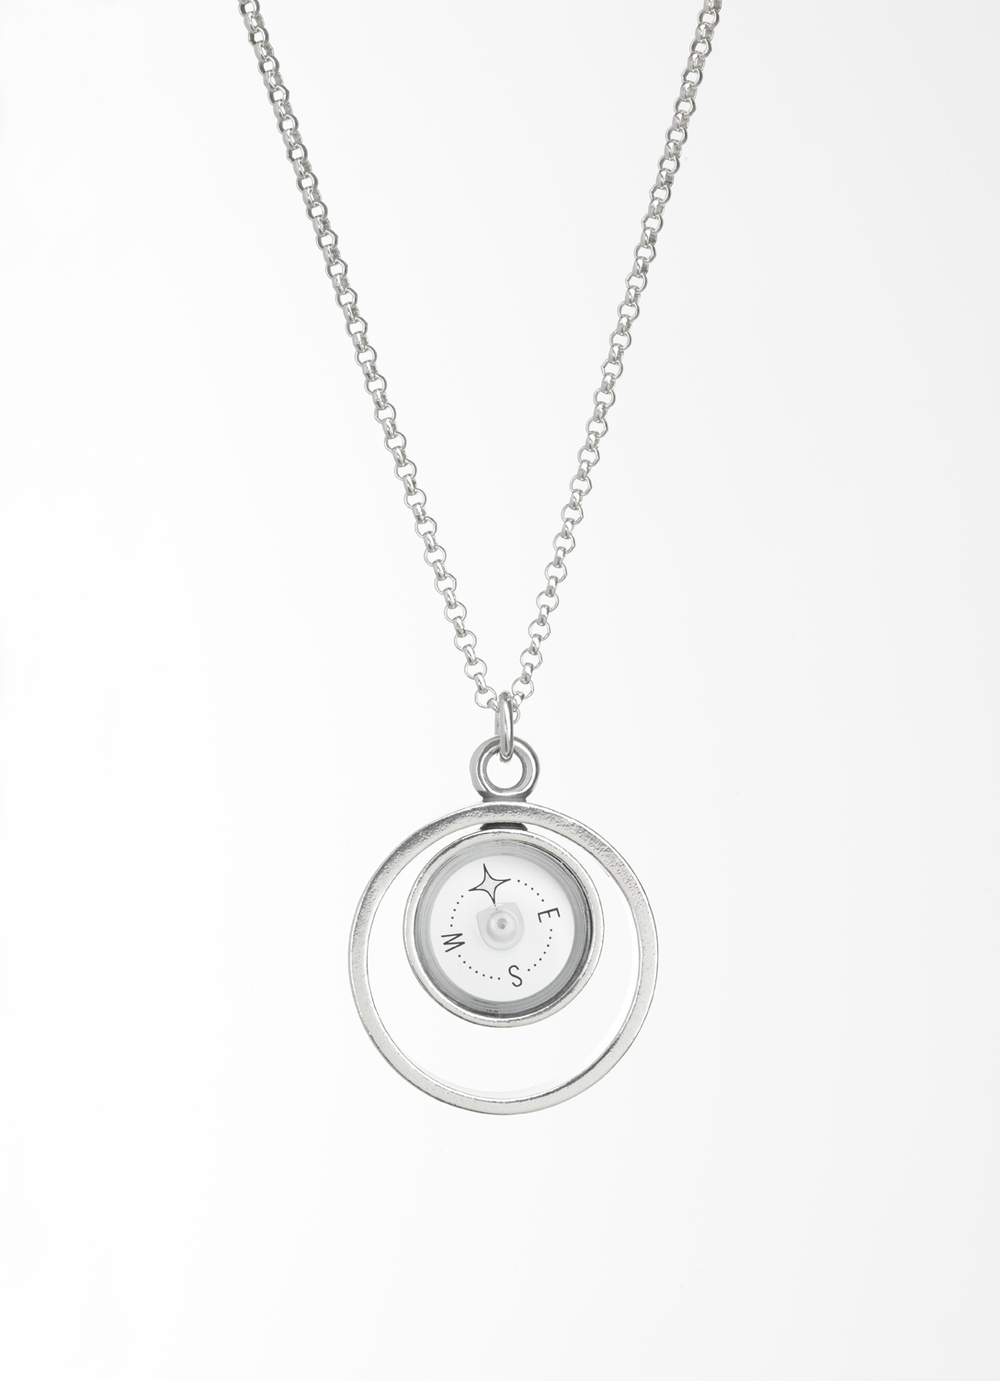 Design for suunto the guiding star compass necklace lina simons guiding star silver compass pendant designed in 2014 this picture is a property aloadofball Choice Image